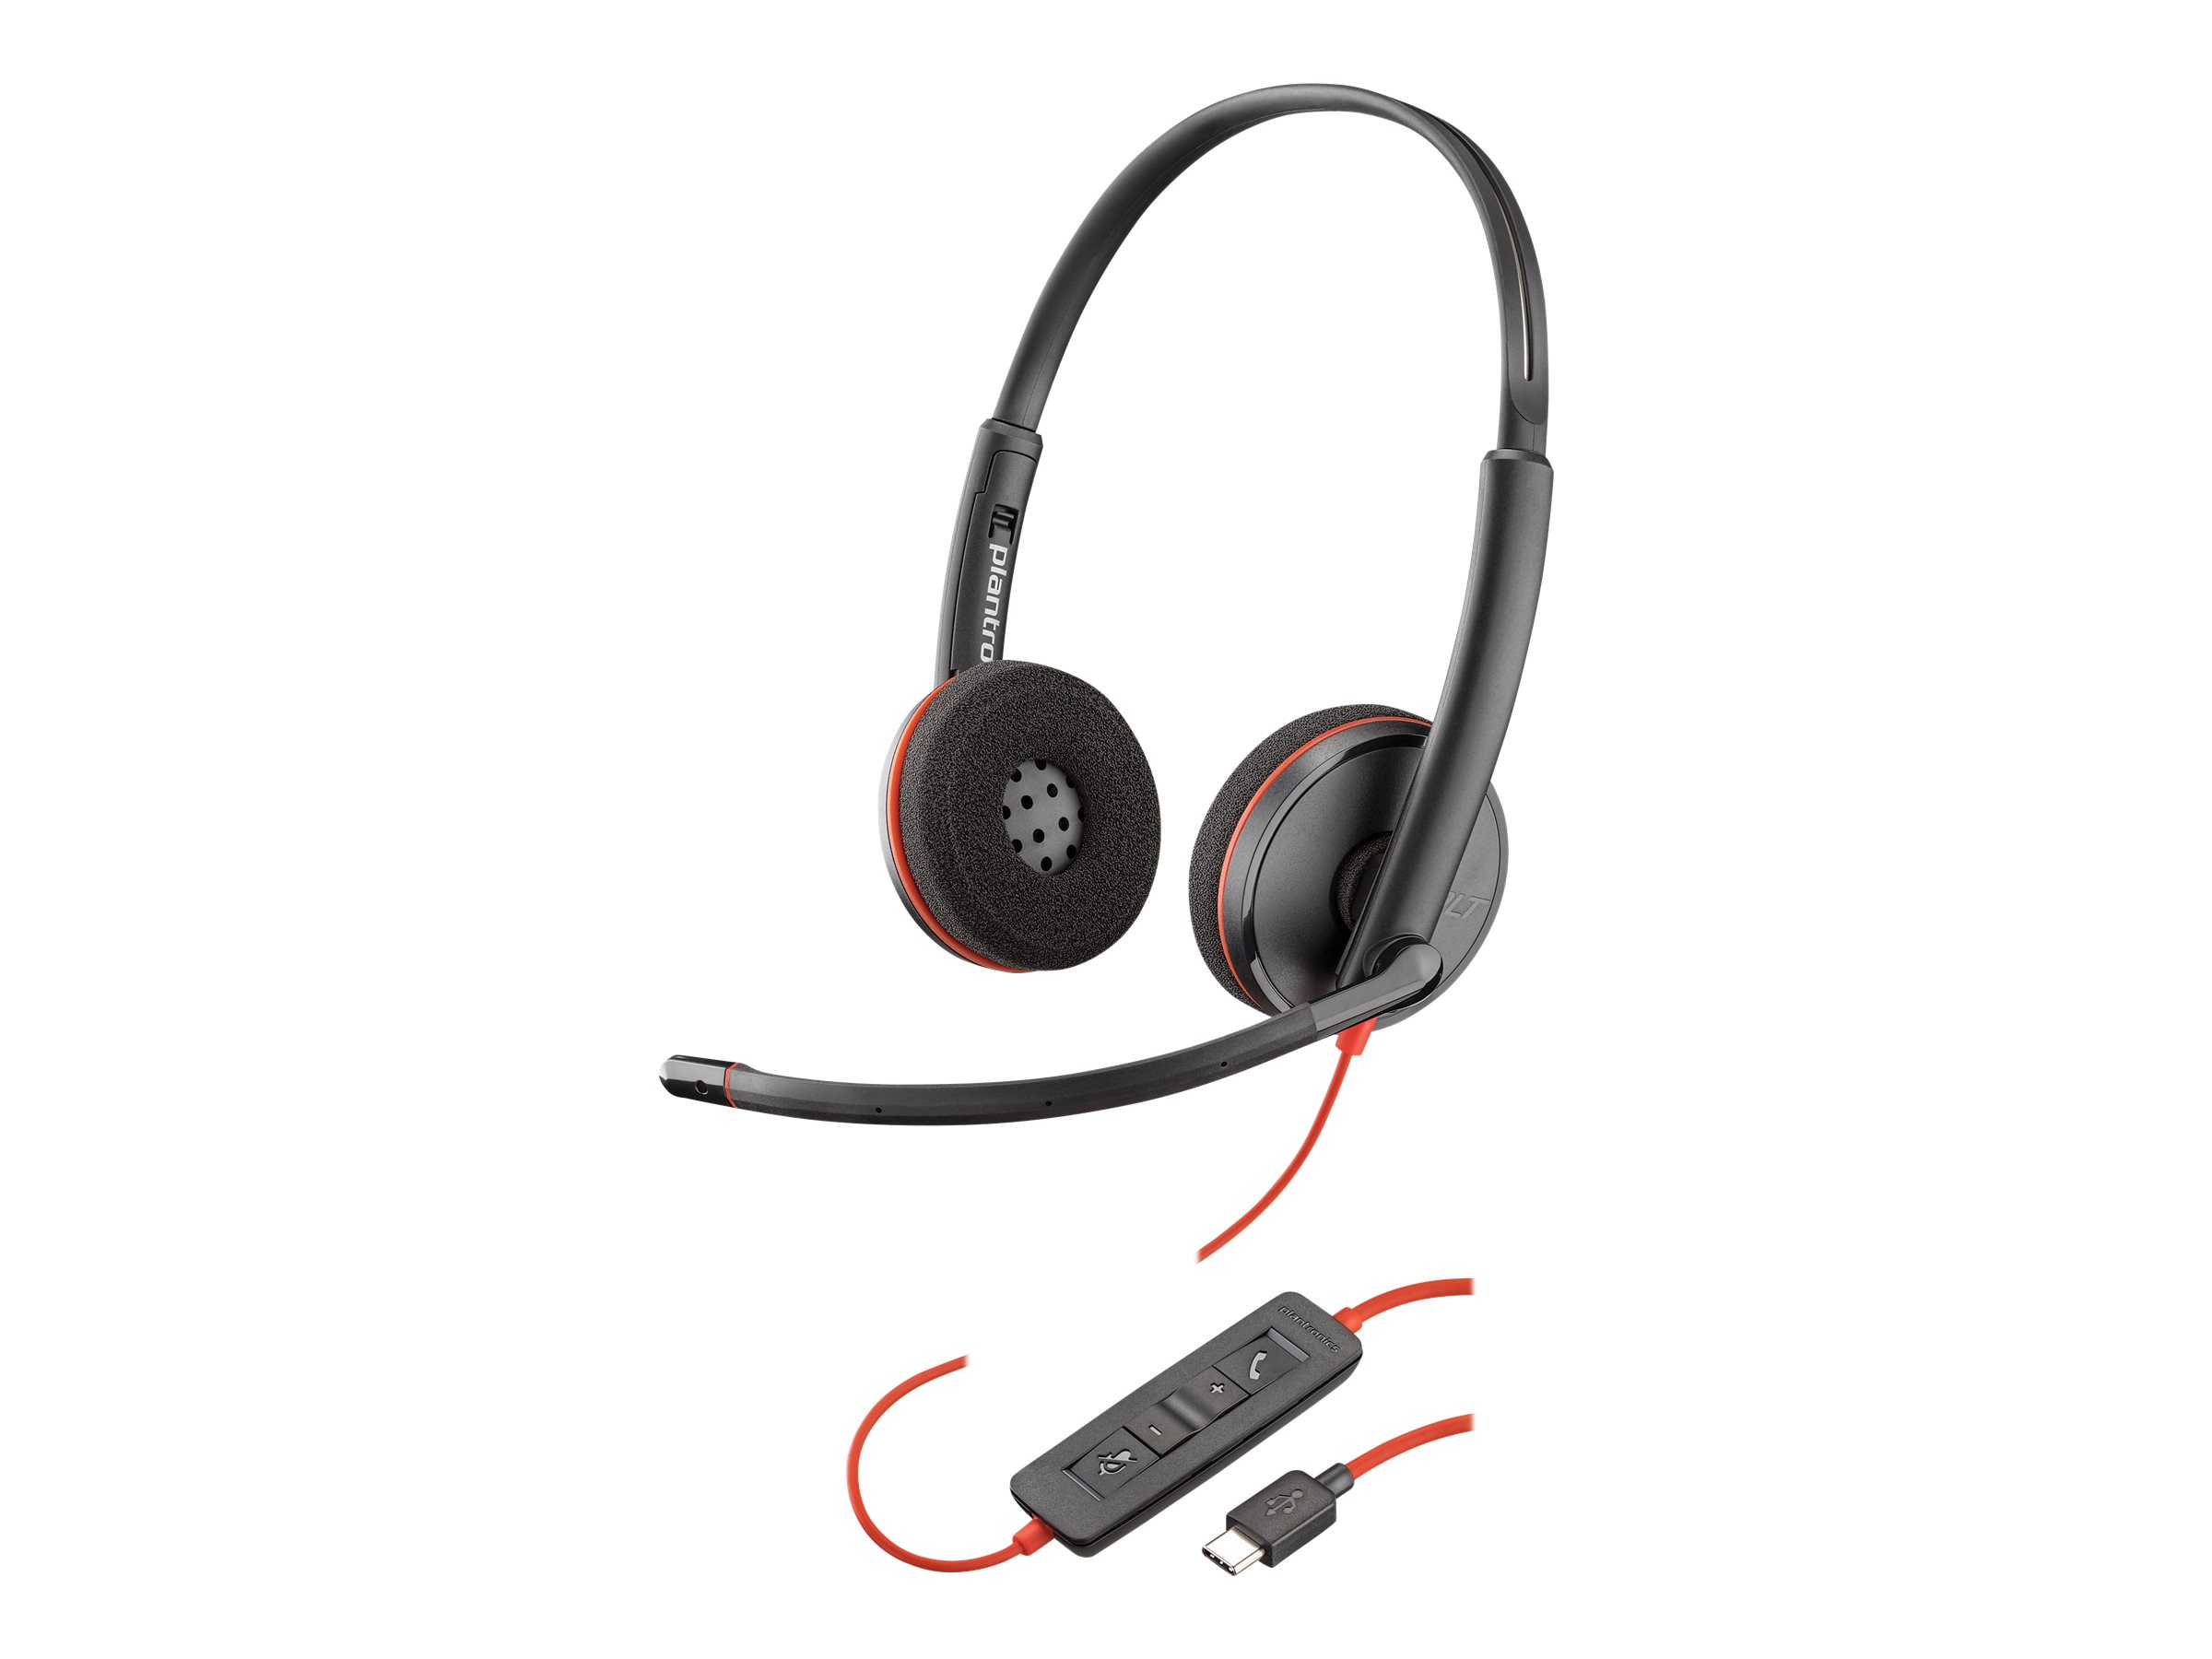 Poly Blackwire C3220 USB - 3200 Series - Headset - On-Ear - kabelgebunden - USB